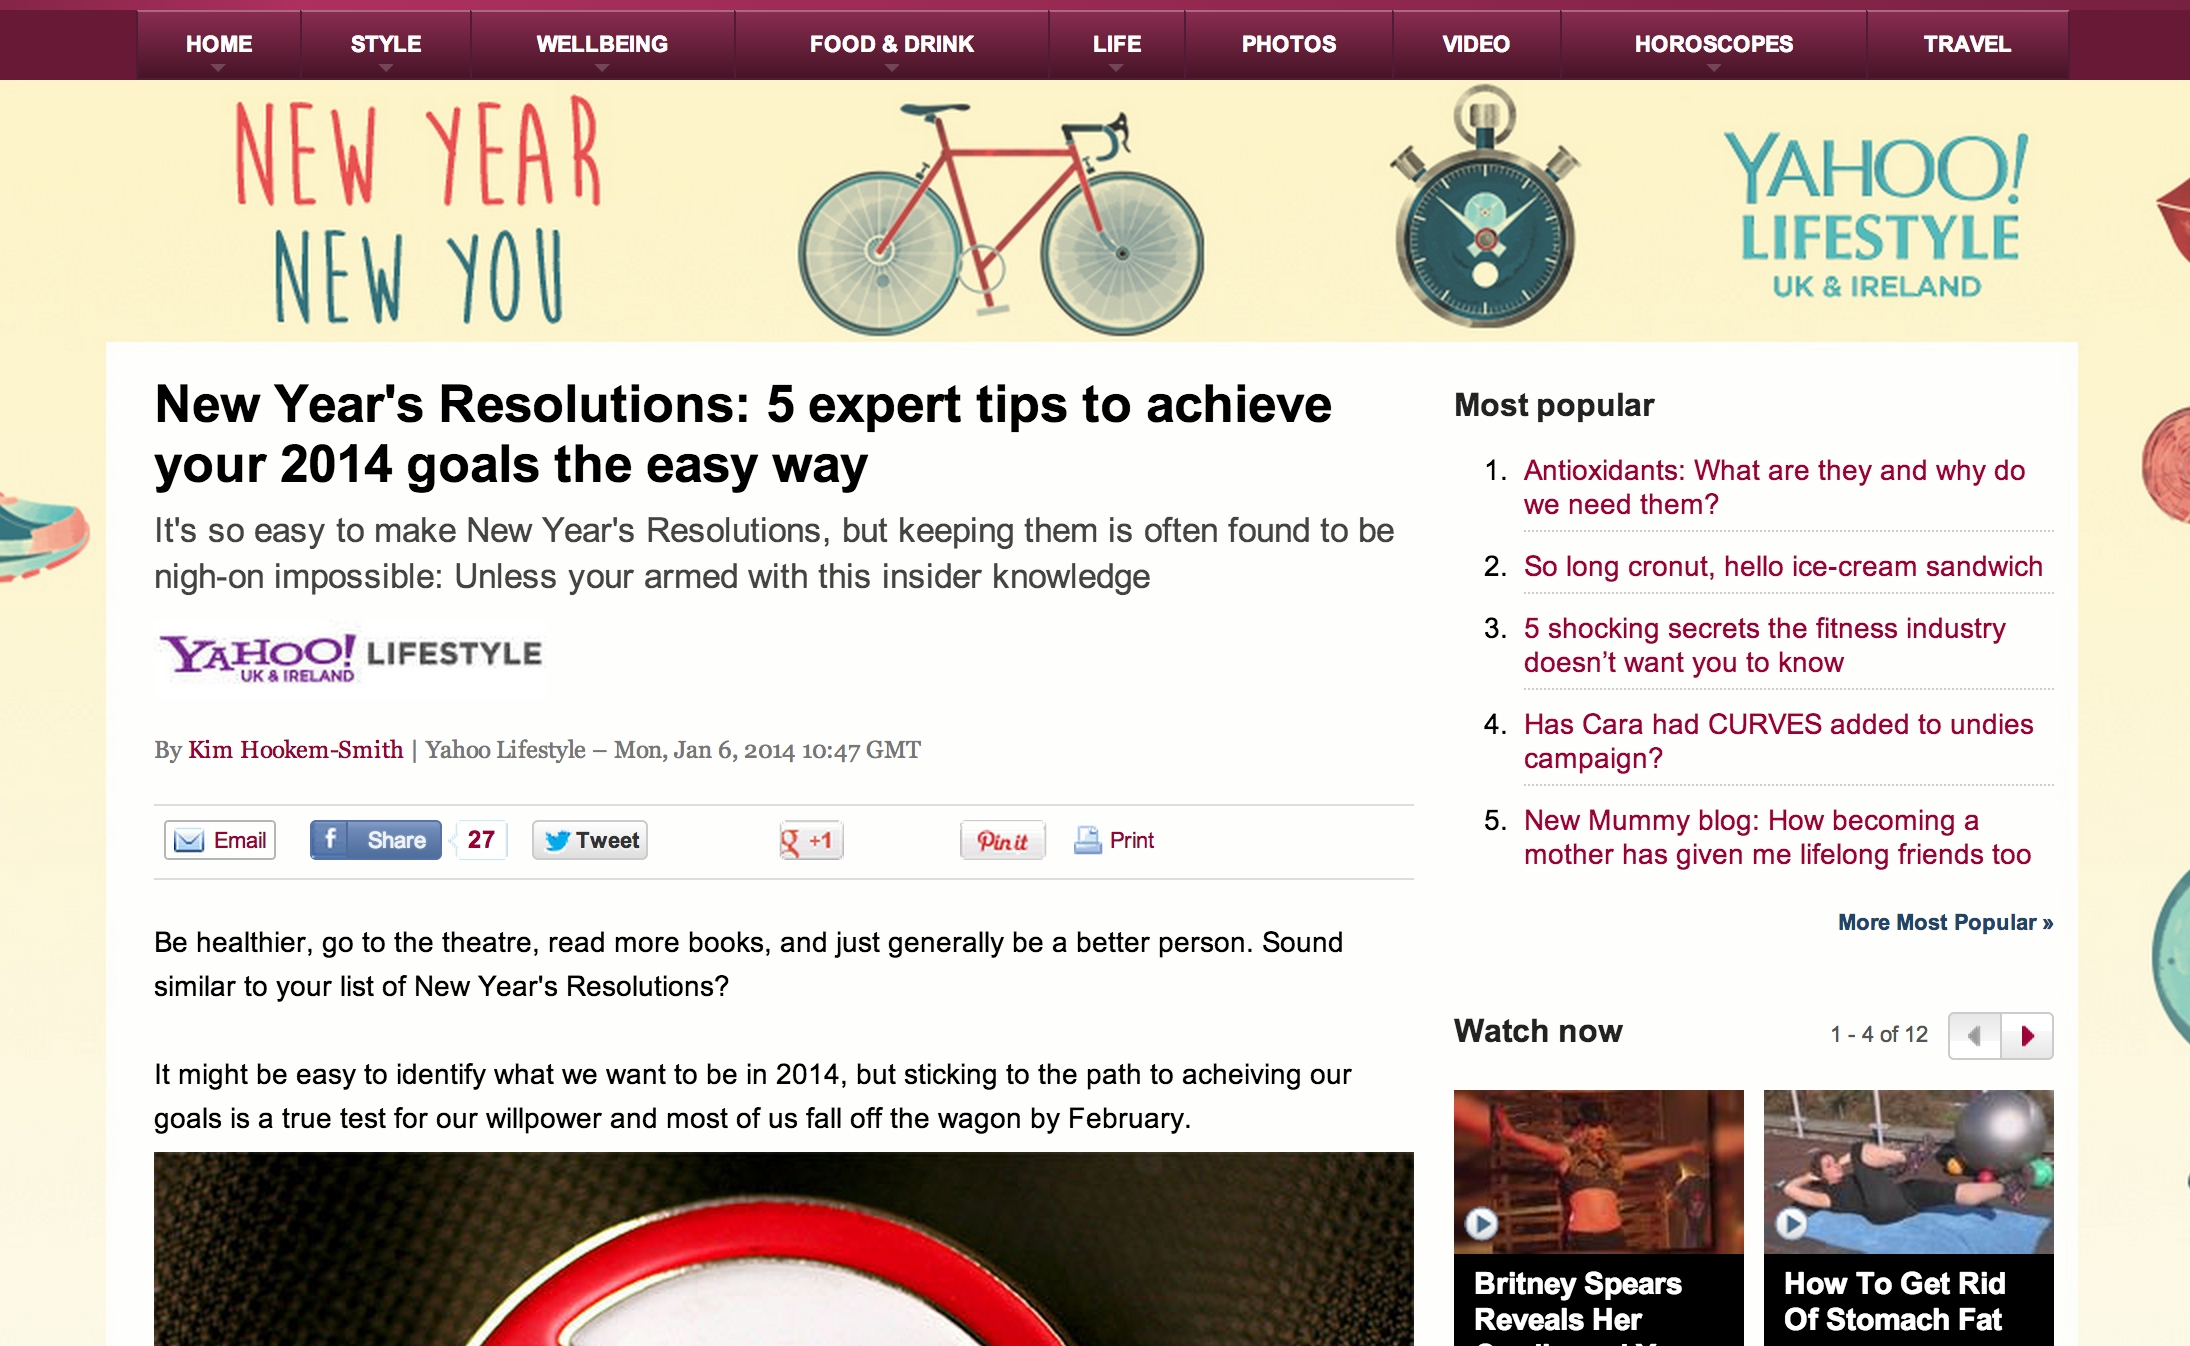 tips for success with new year's resolutions